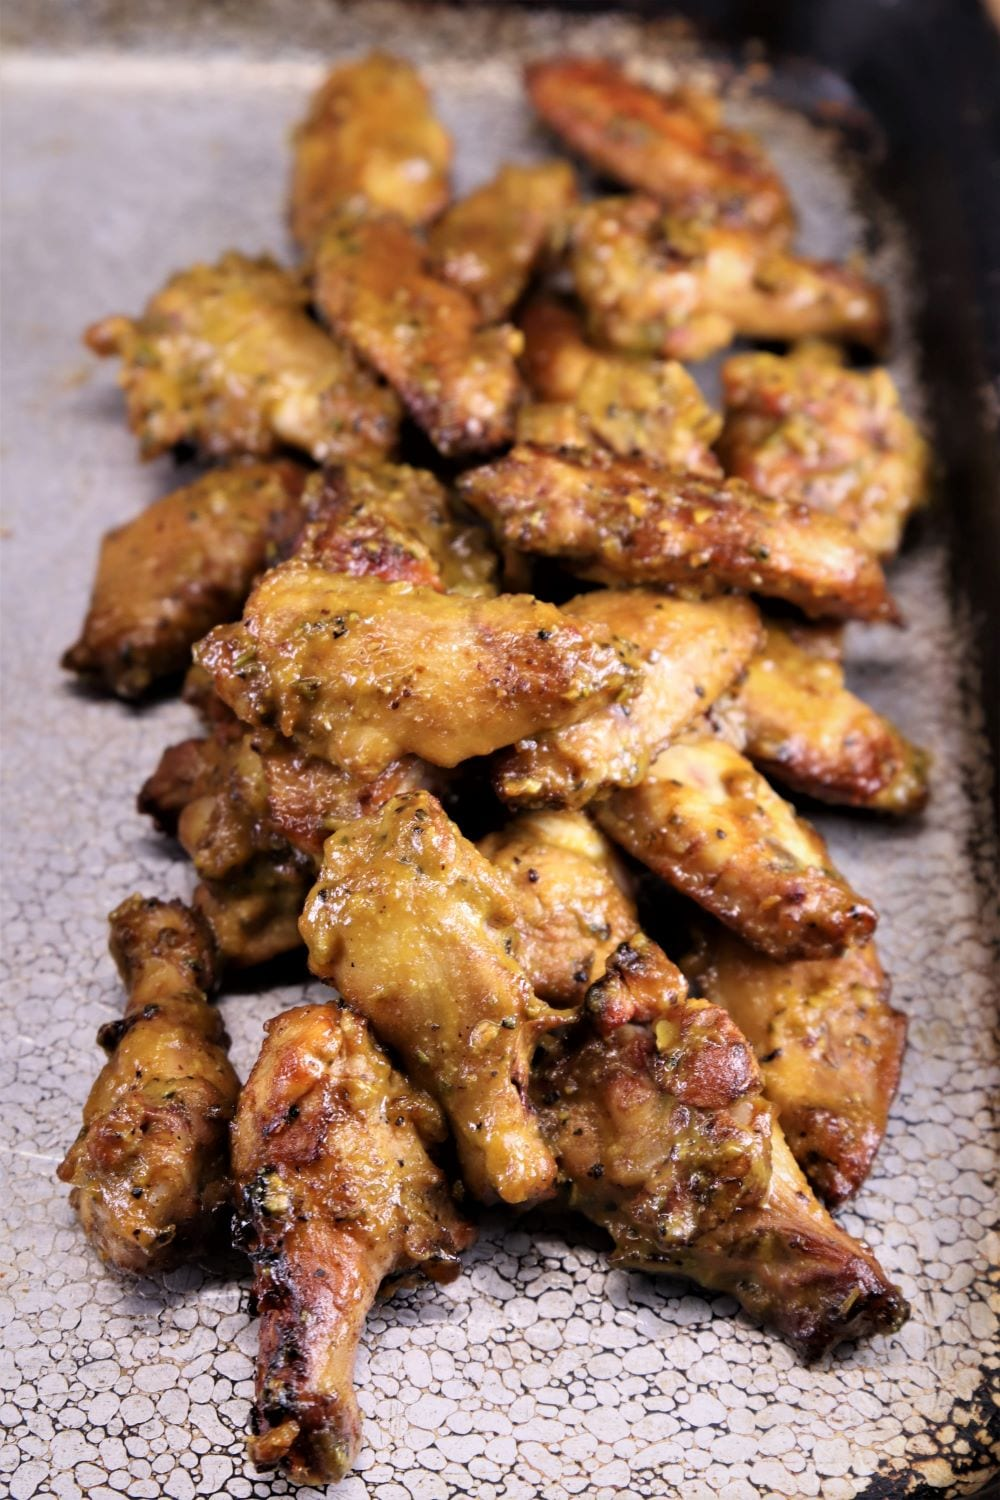 grilled chicken wings on a sheet pan